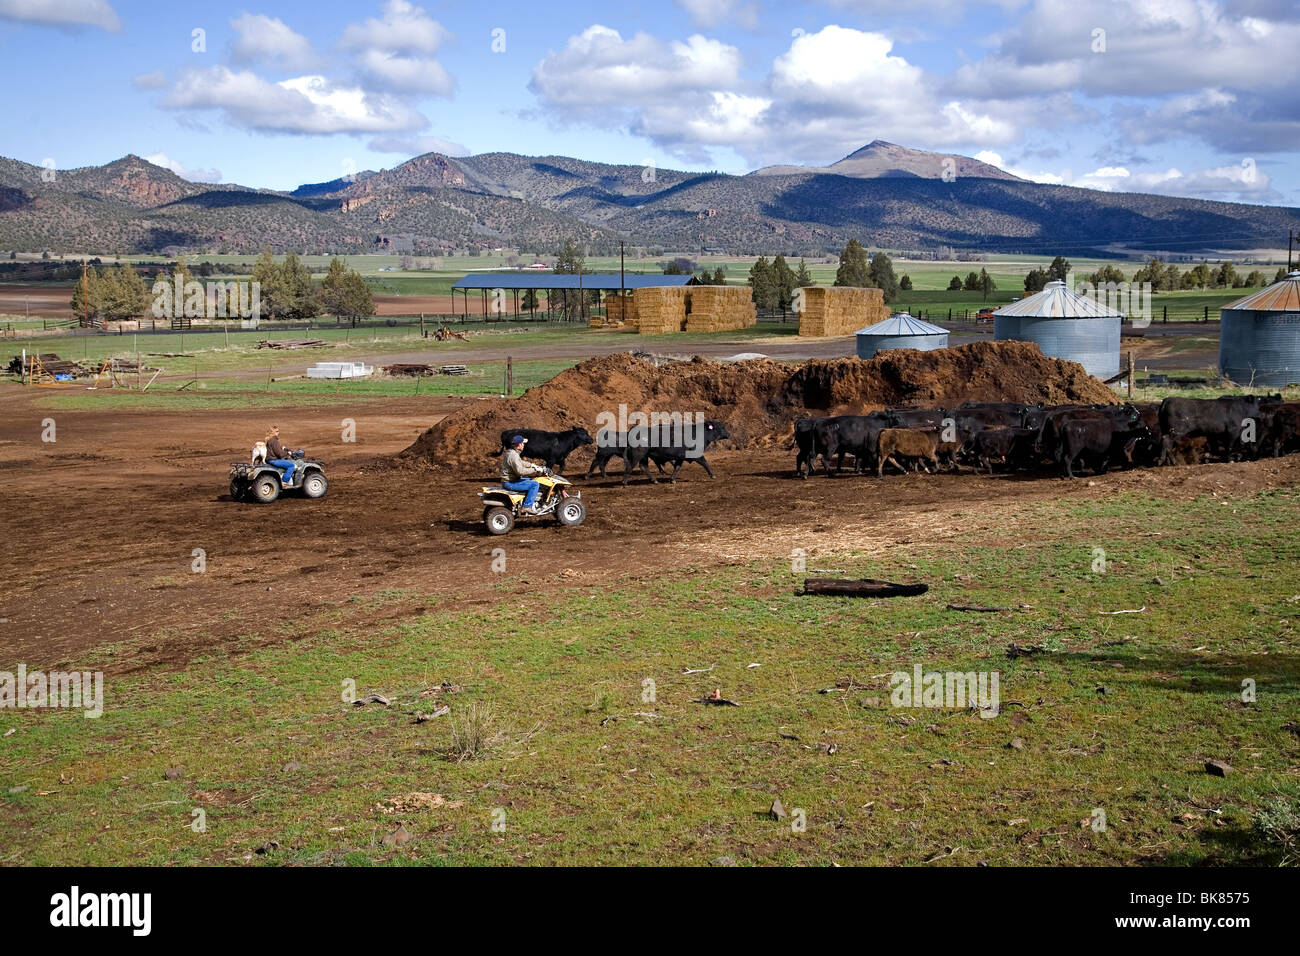 A modern cowboy on an ATV All Terrain Vehicle rounds up a herd of cattle for branding on a large cattle ranch in Stock Photo